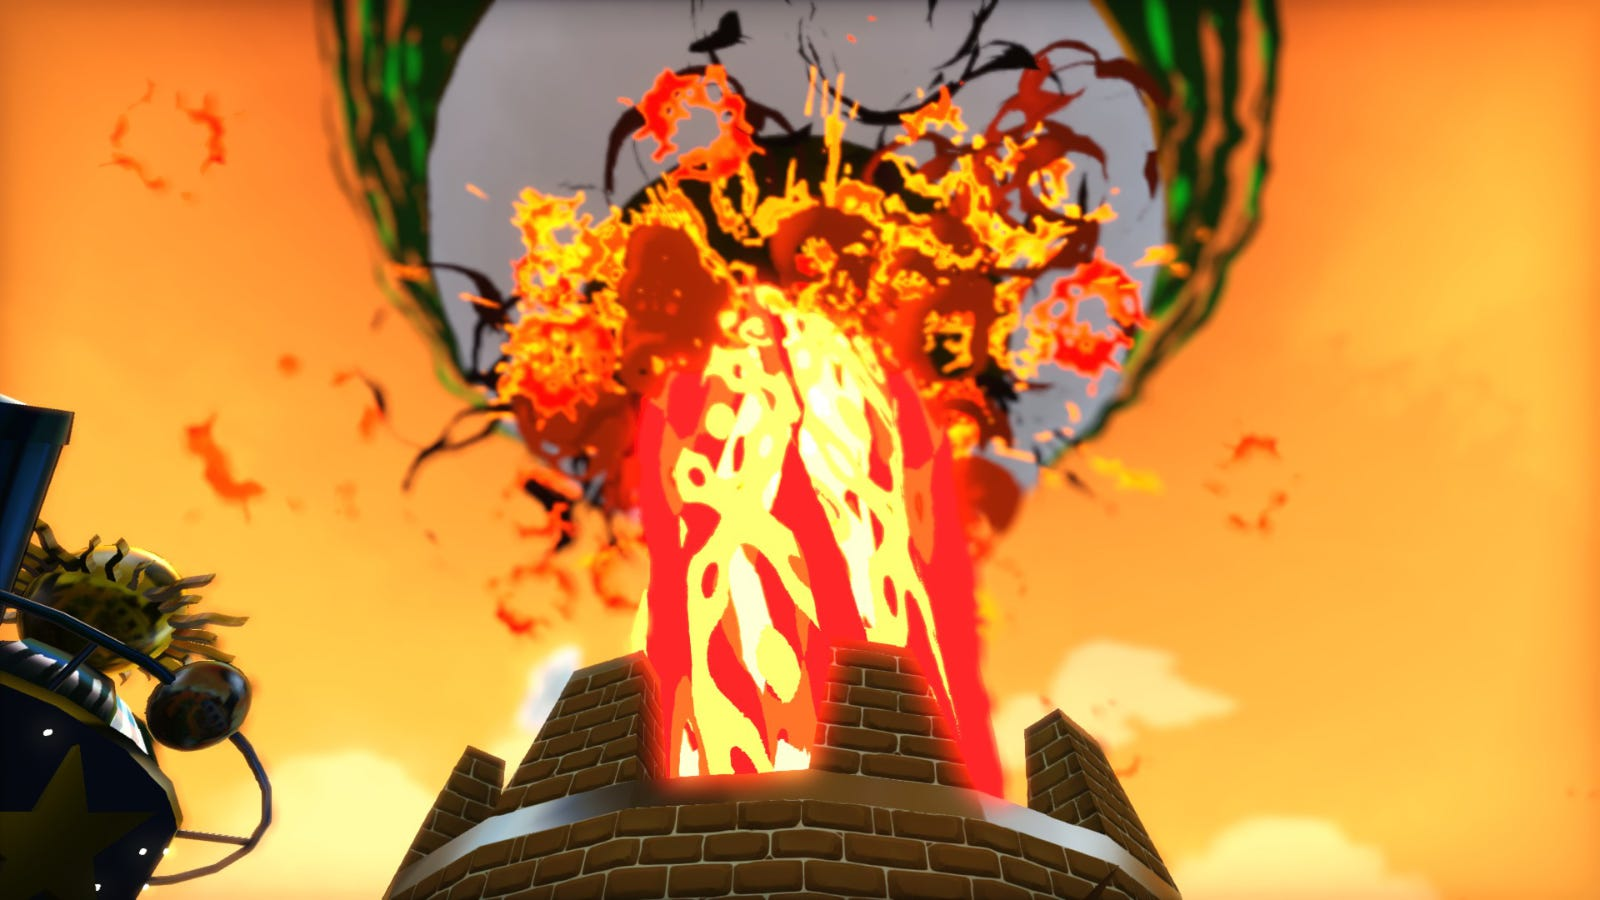 An erupting volcano from 'A Hat in Time'